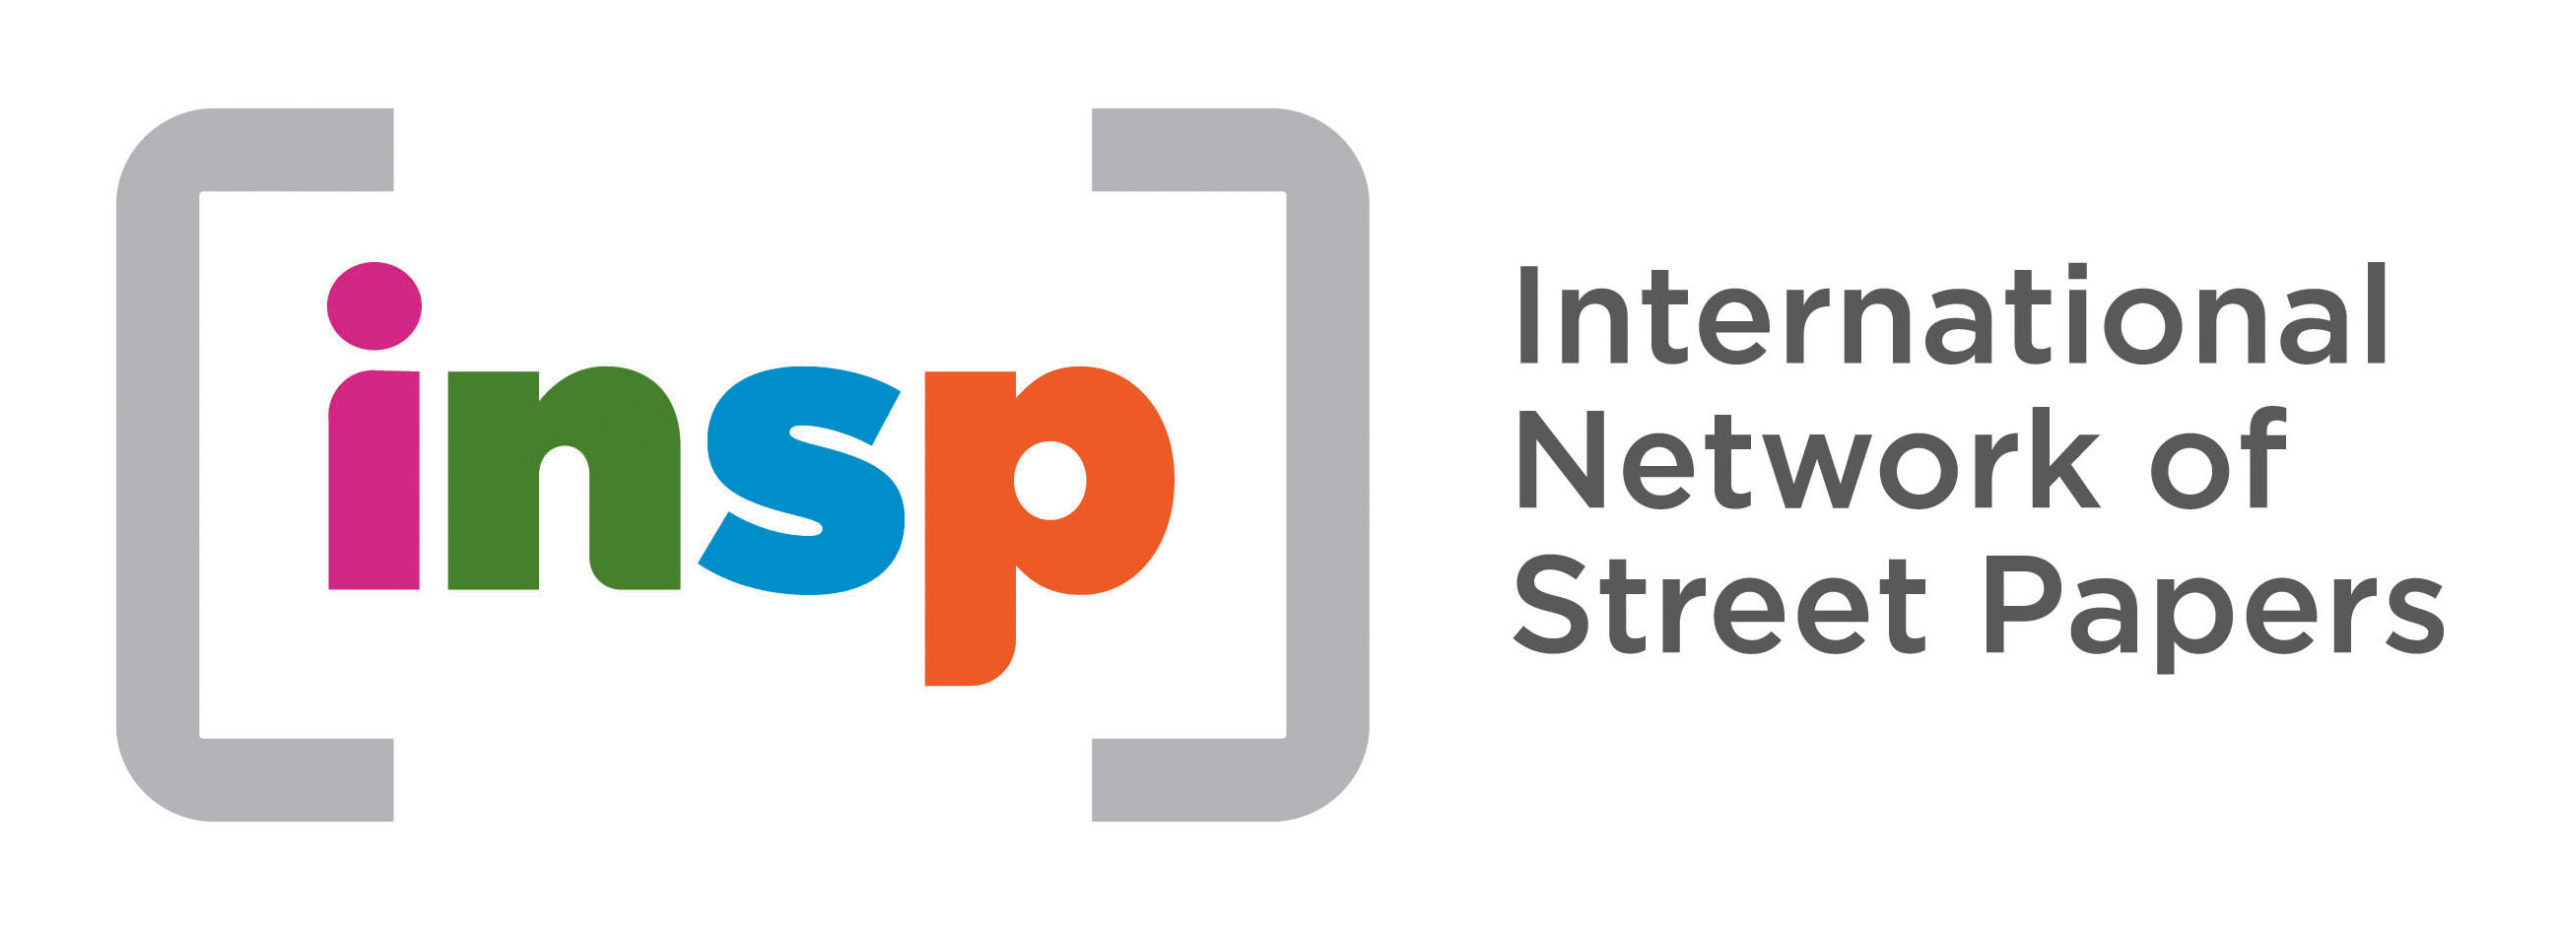 International Network of Street Papers (INSP)